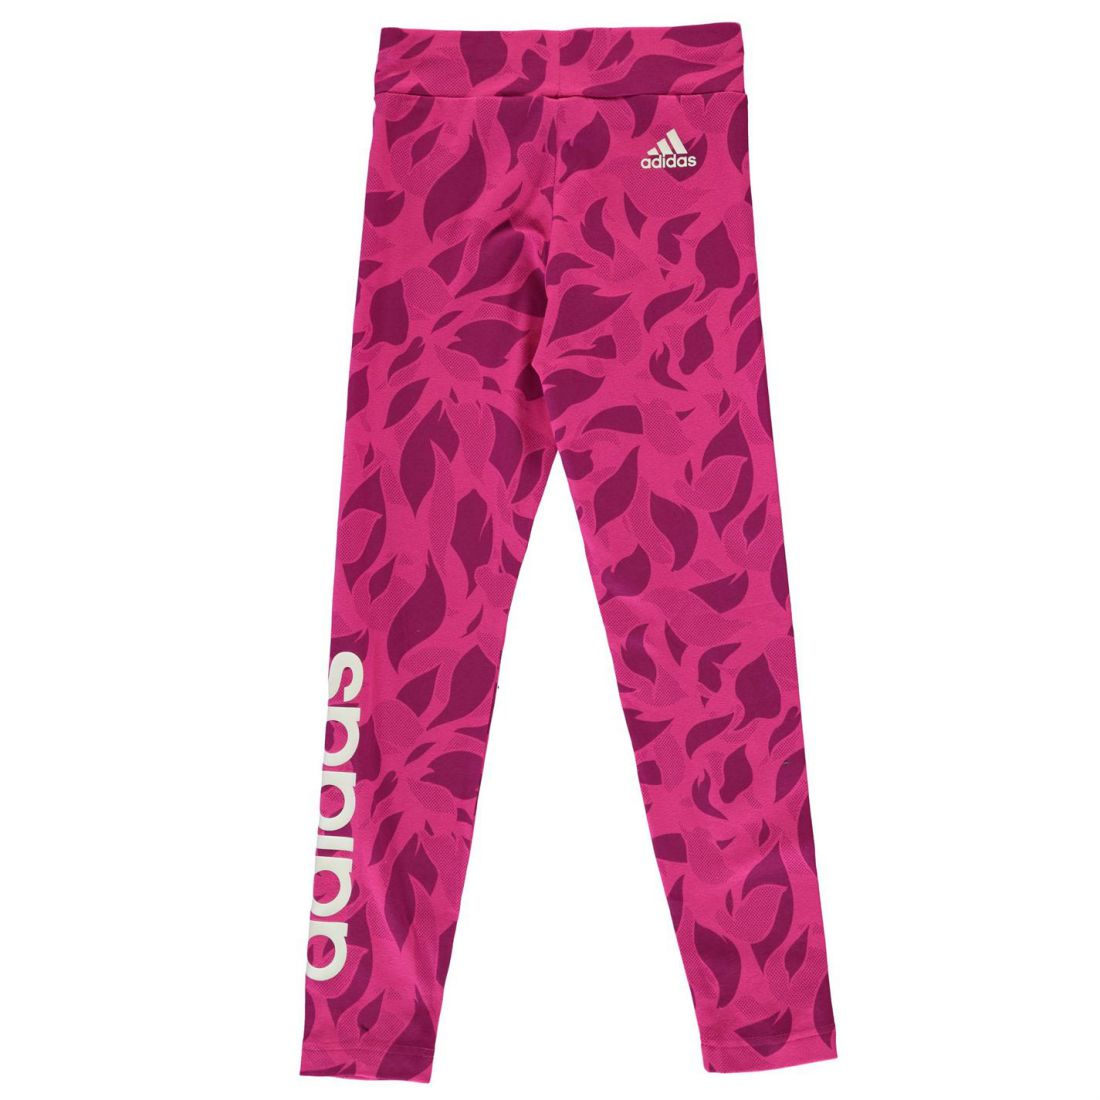 810483412759fc Image is loading adidas-Kids-Girls-Lined-Print-Tights-Junior-Performance-